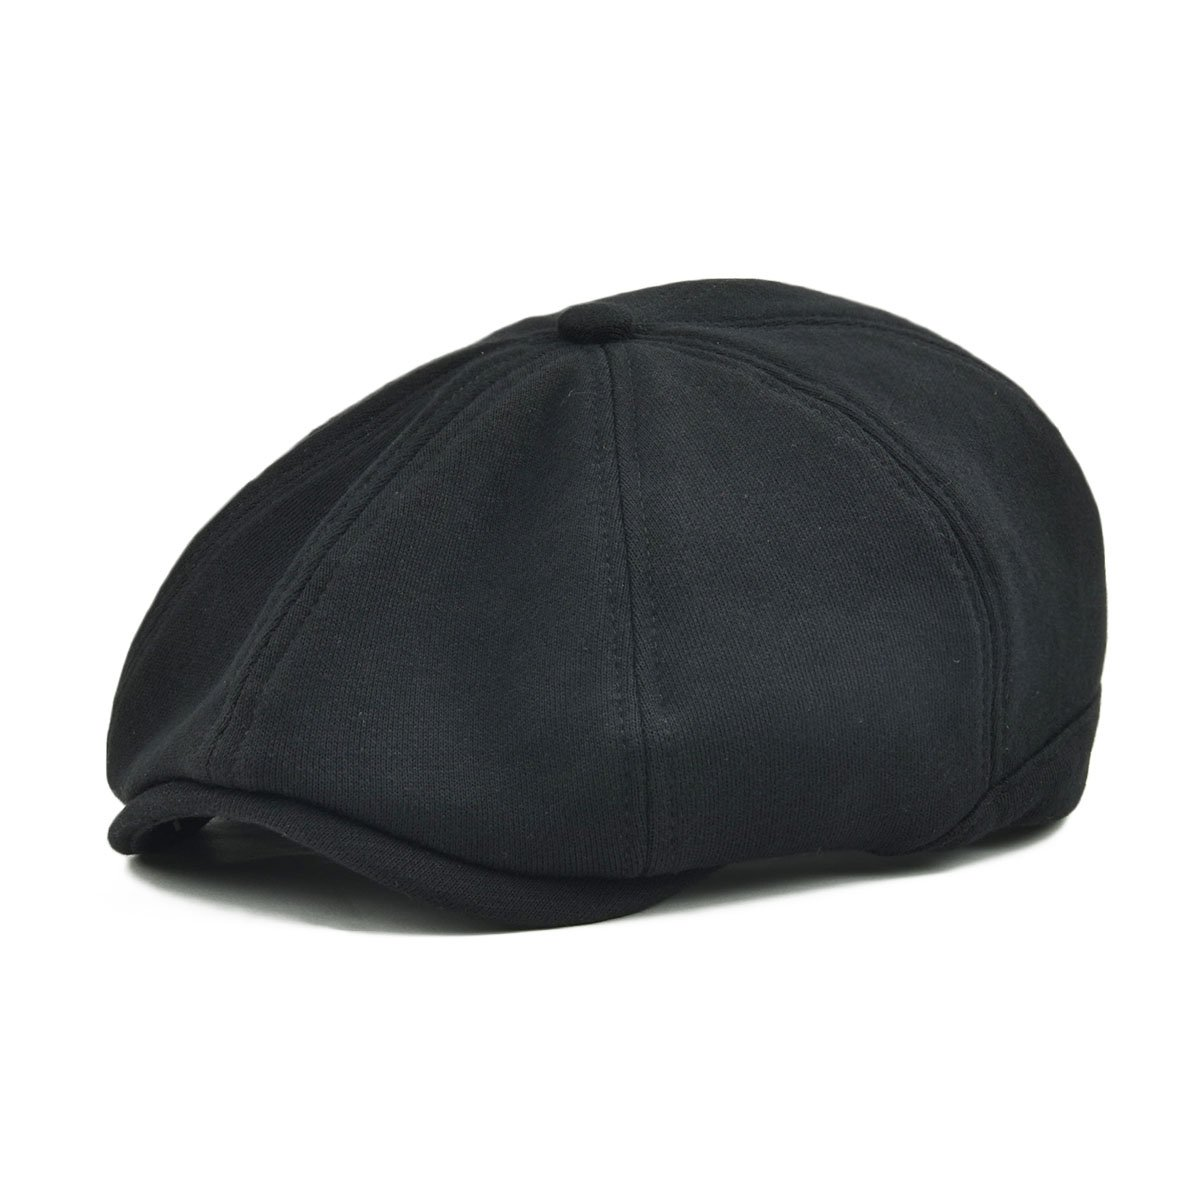 VOBOOM Men's Cotton Flat Ivy Gatsby Newsboy Driving Hat Cap (Style4-Black)